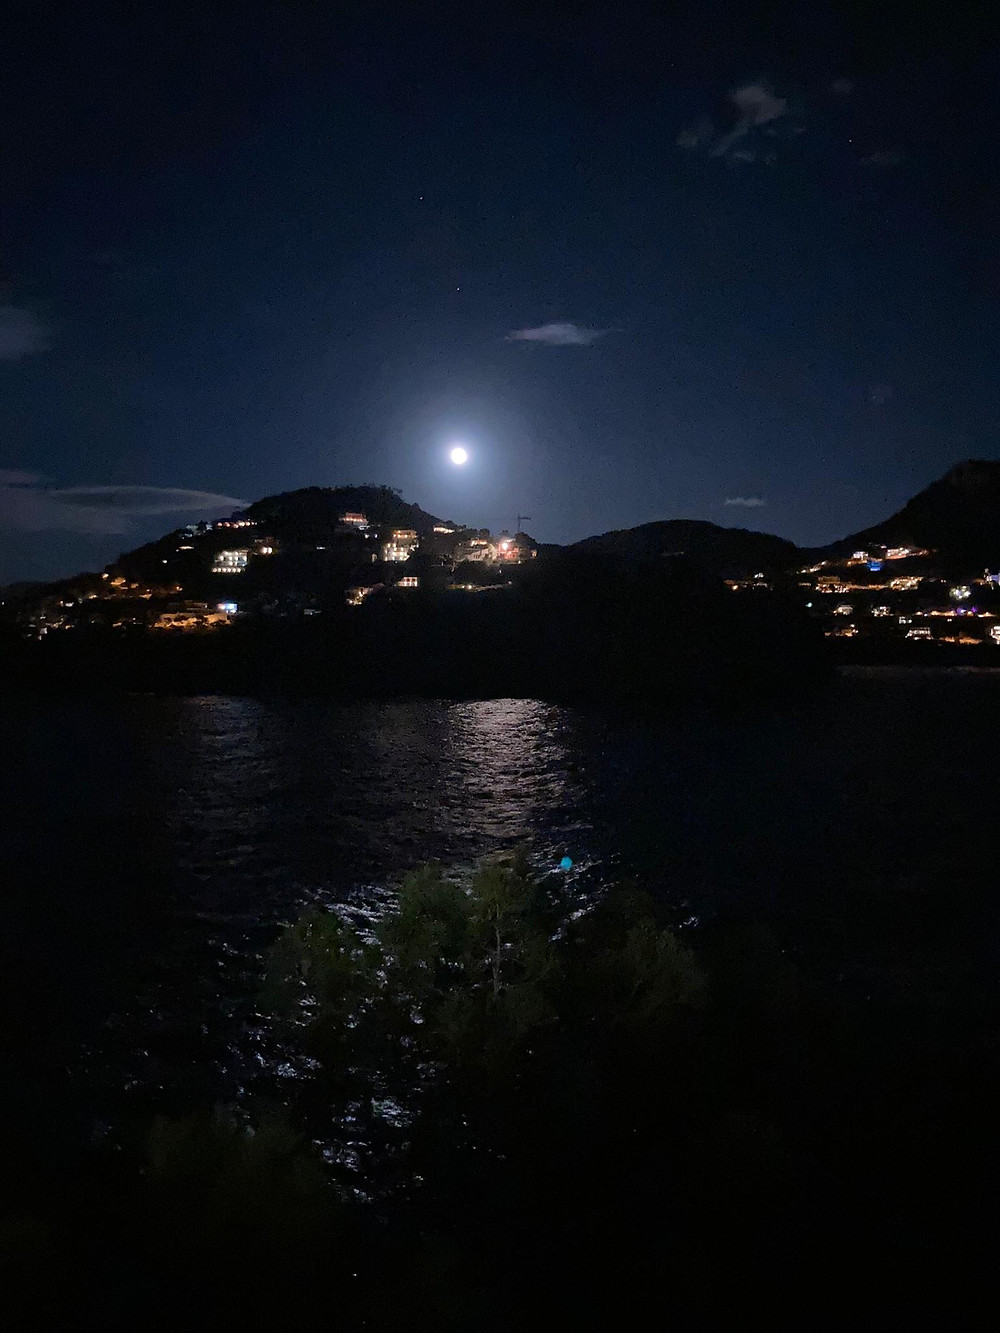 Andrax by night, mallorca, full moon.